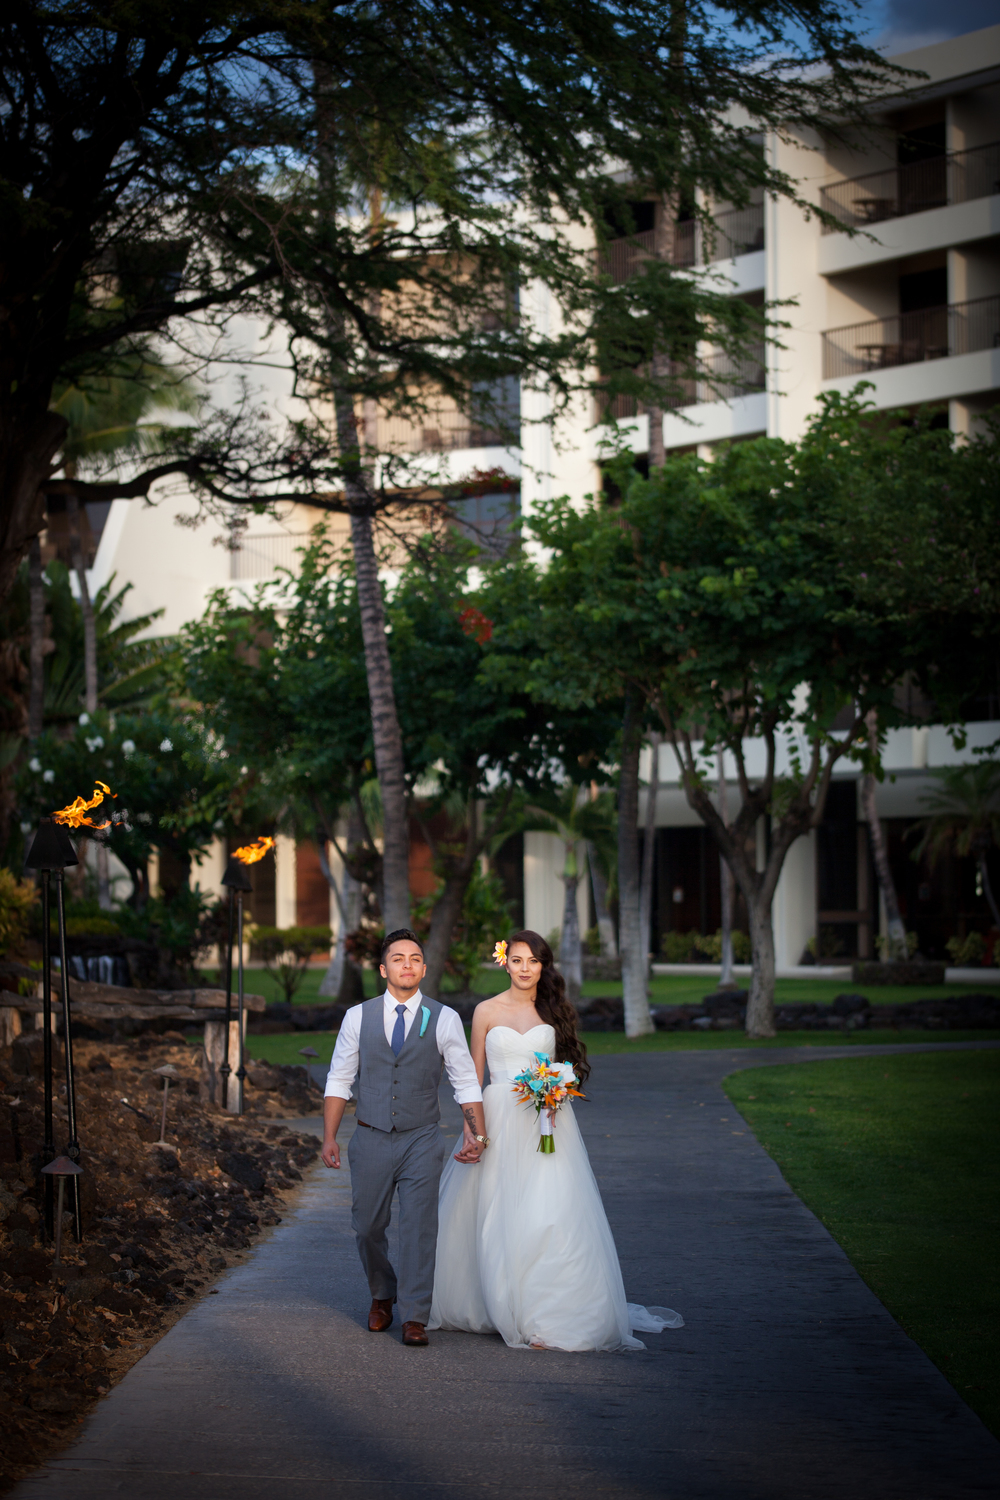 big island hawaii mauna lani resort wedding © kelilina photography 20160523181244-1.jpg